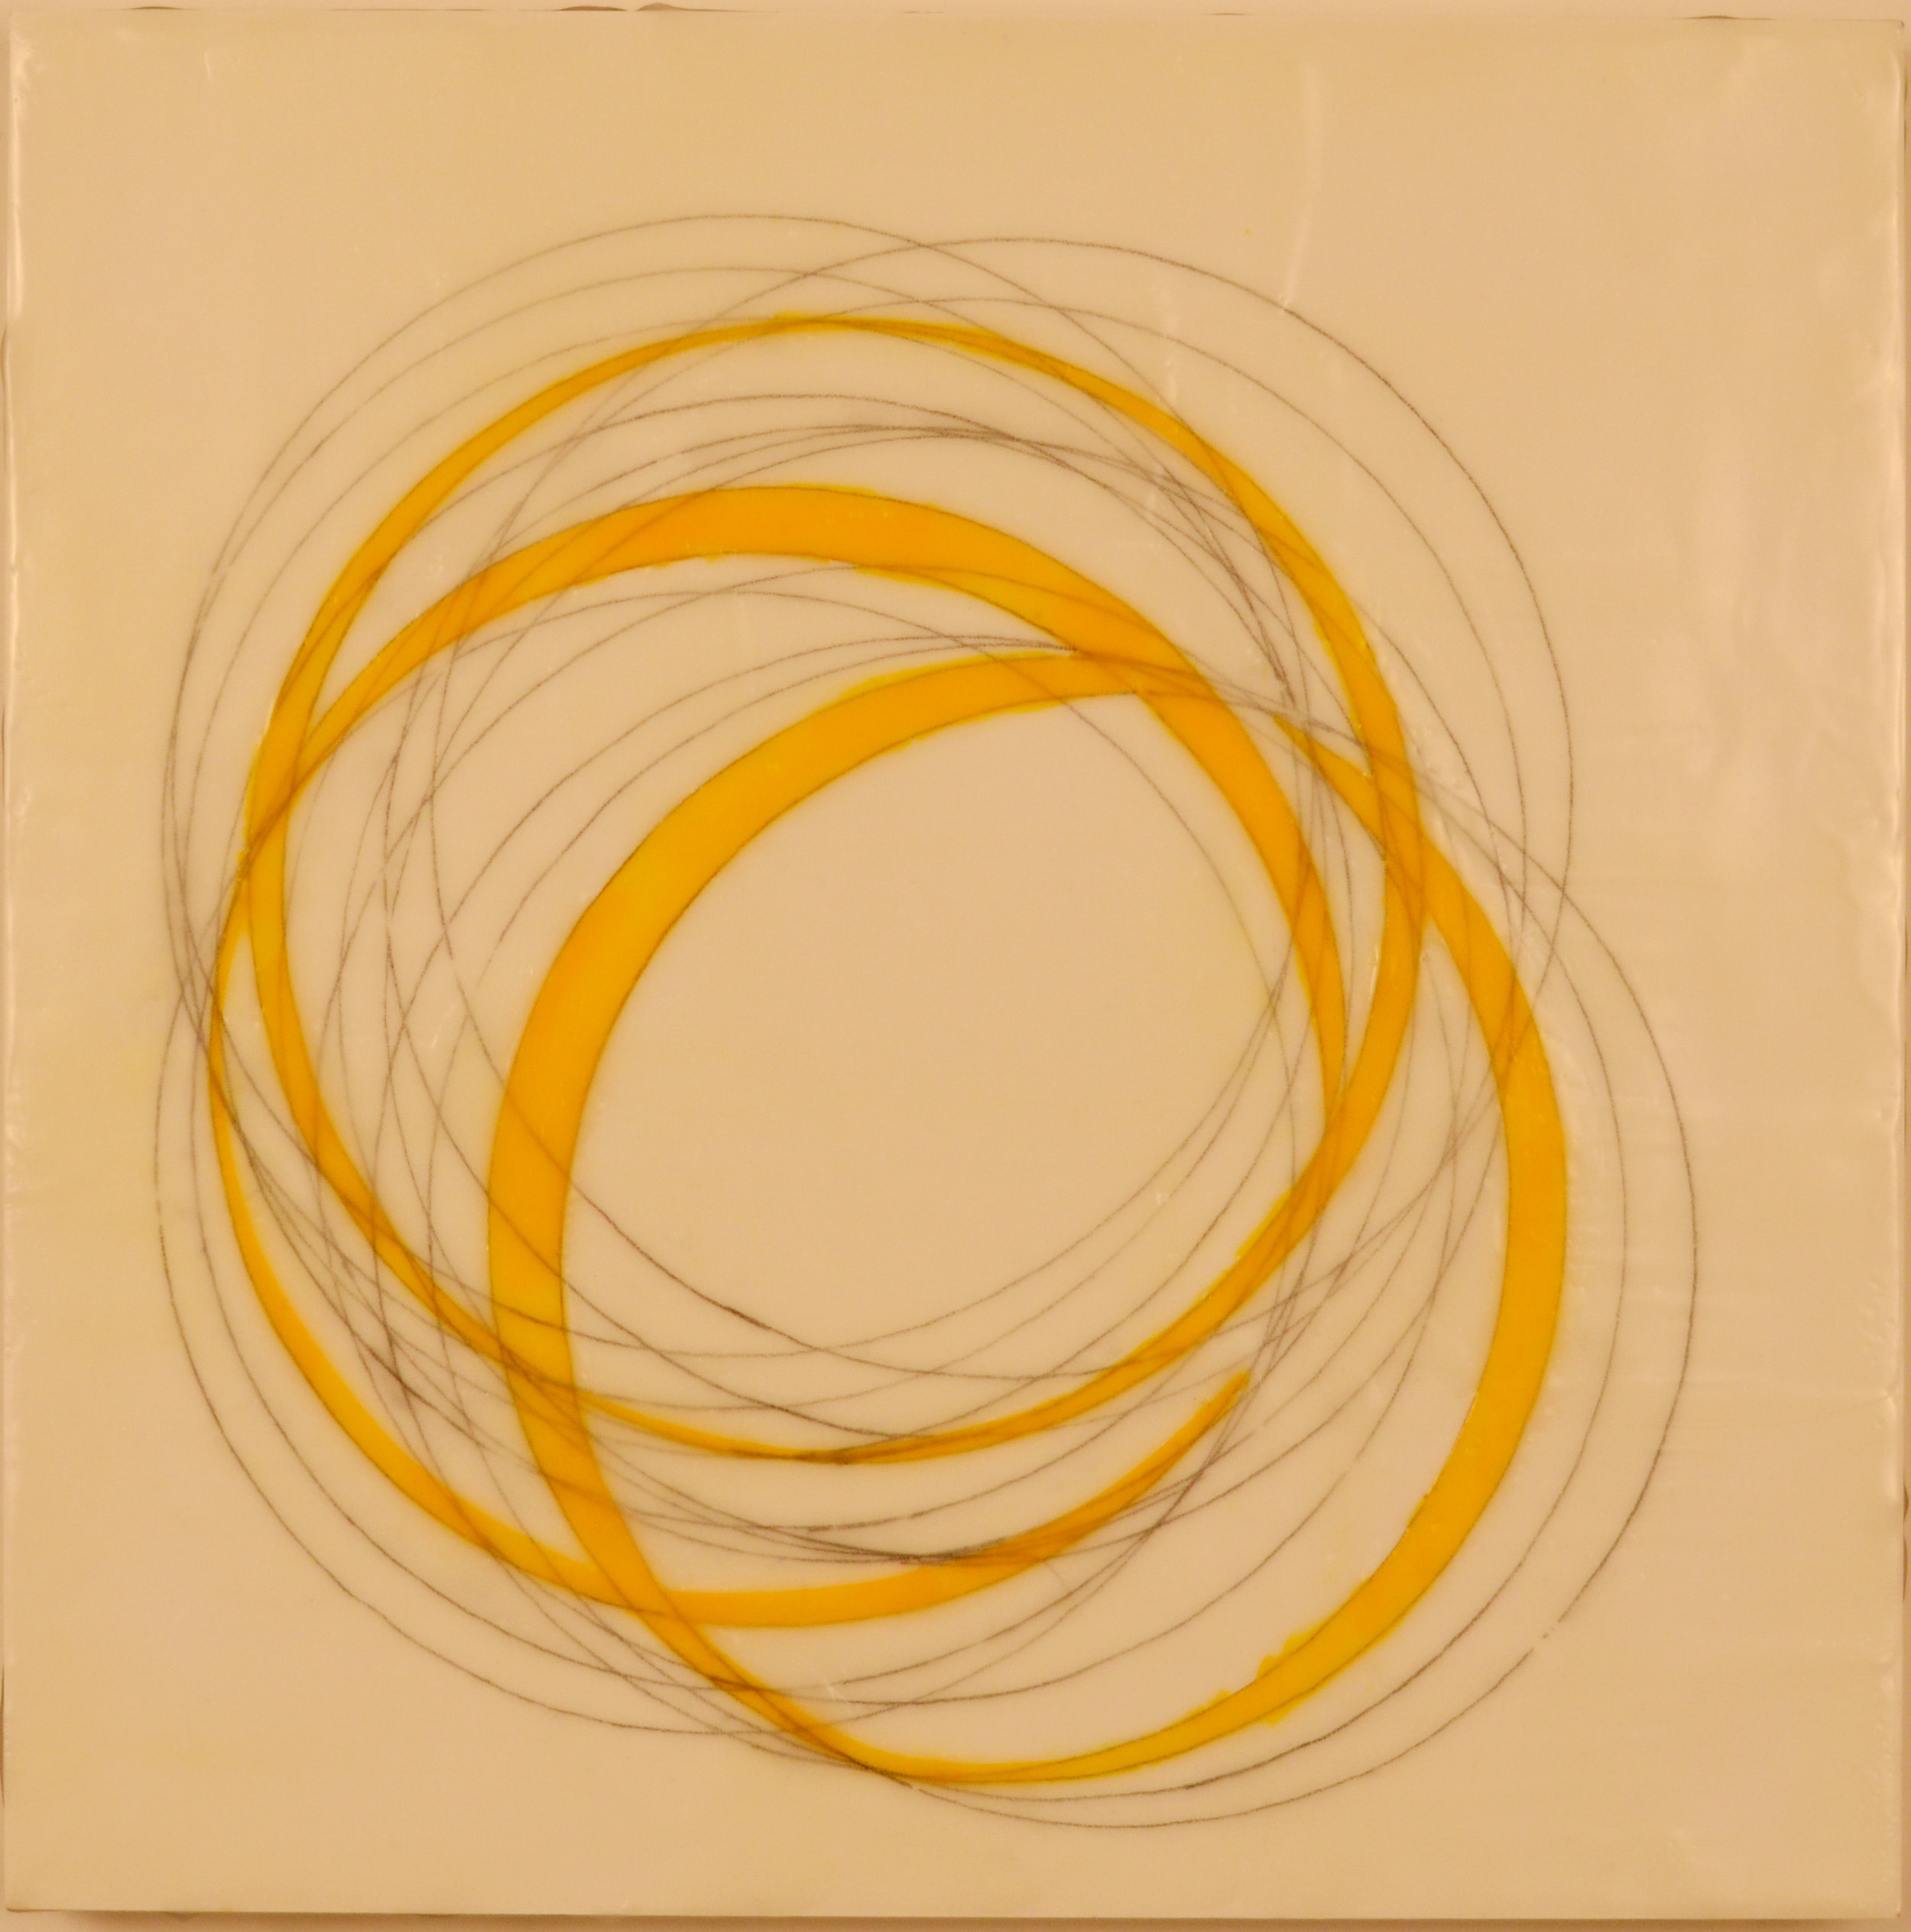 Cocentric Spin Study